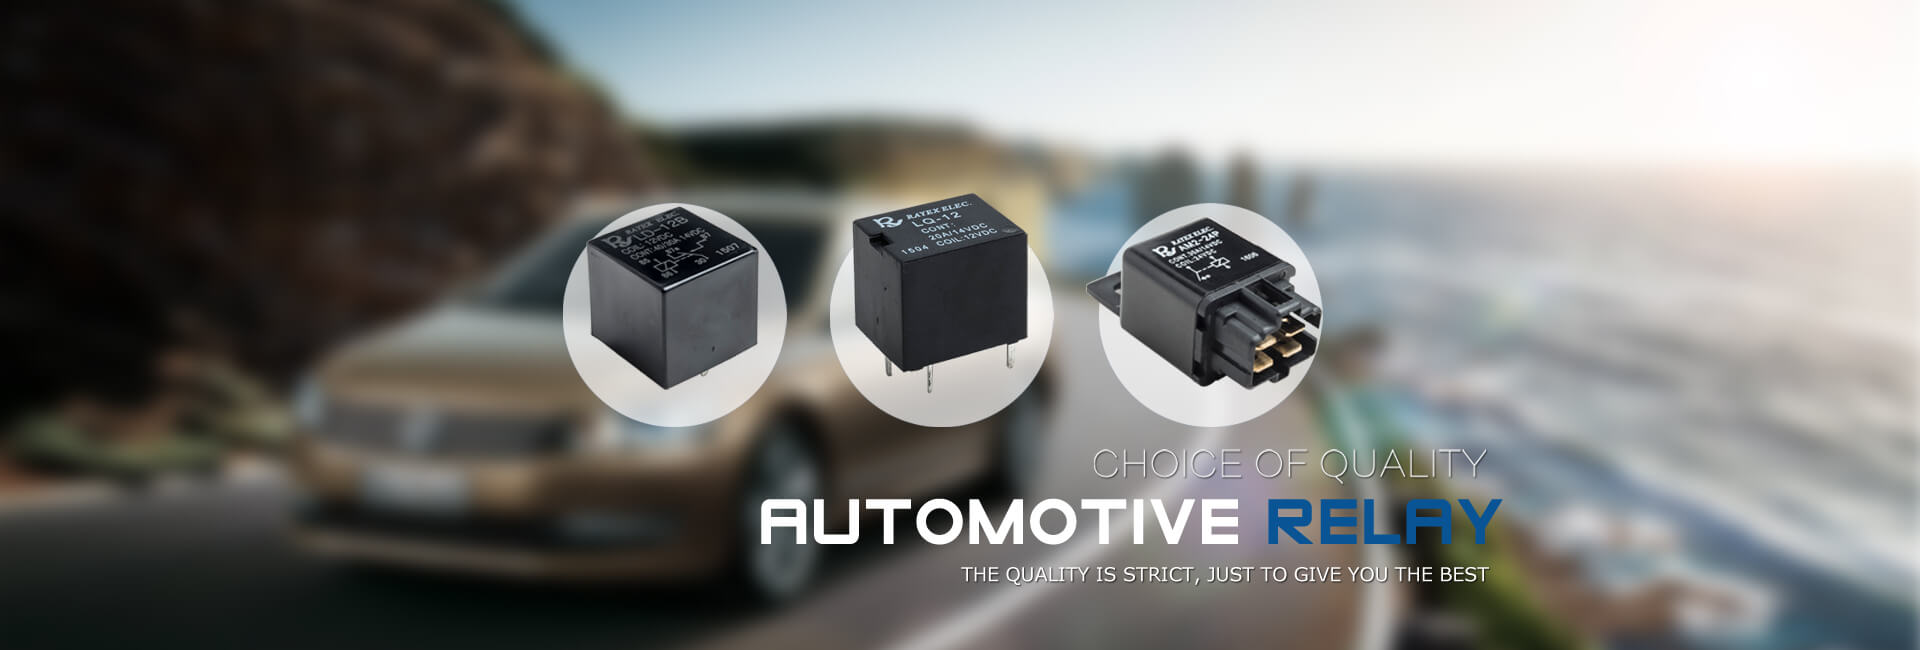 Rayex Electronics Co Ltd Relay Switchelectrical Automotive Relays How They Work